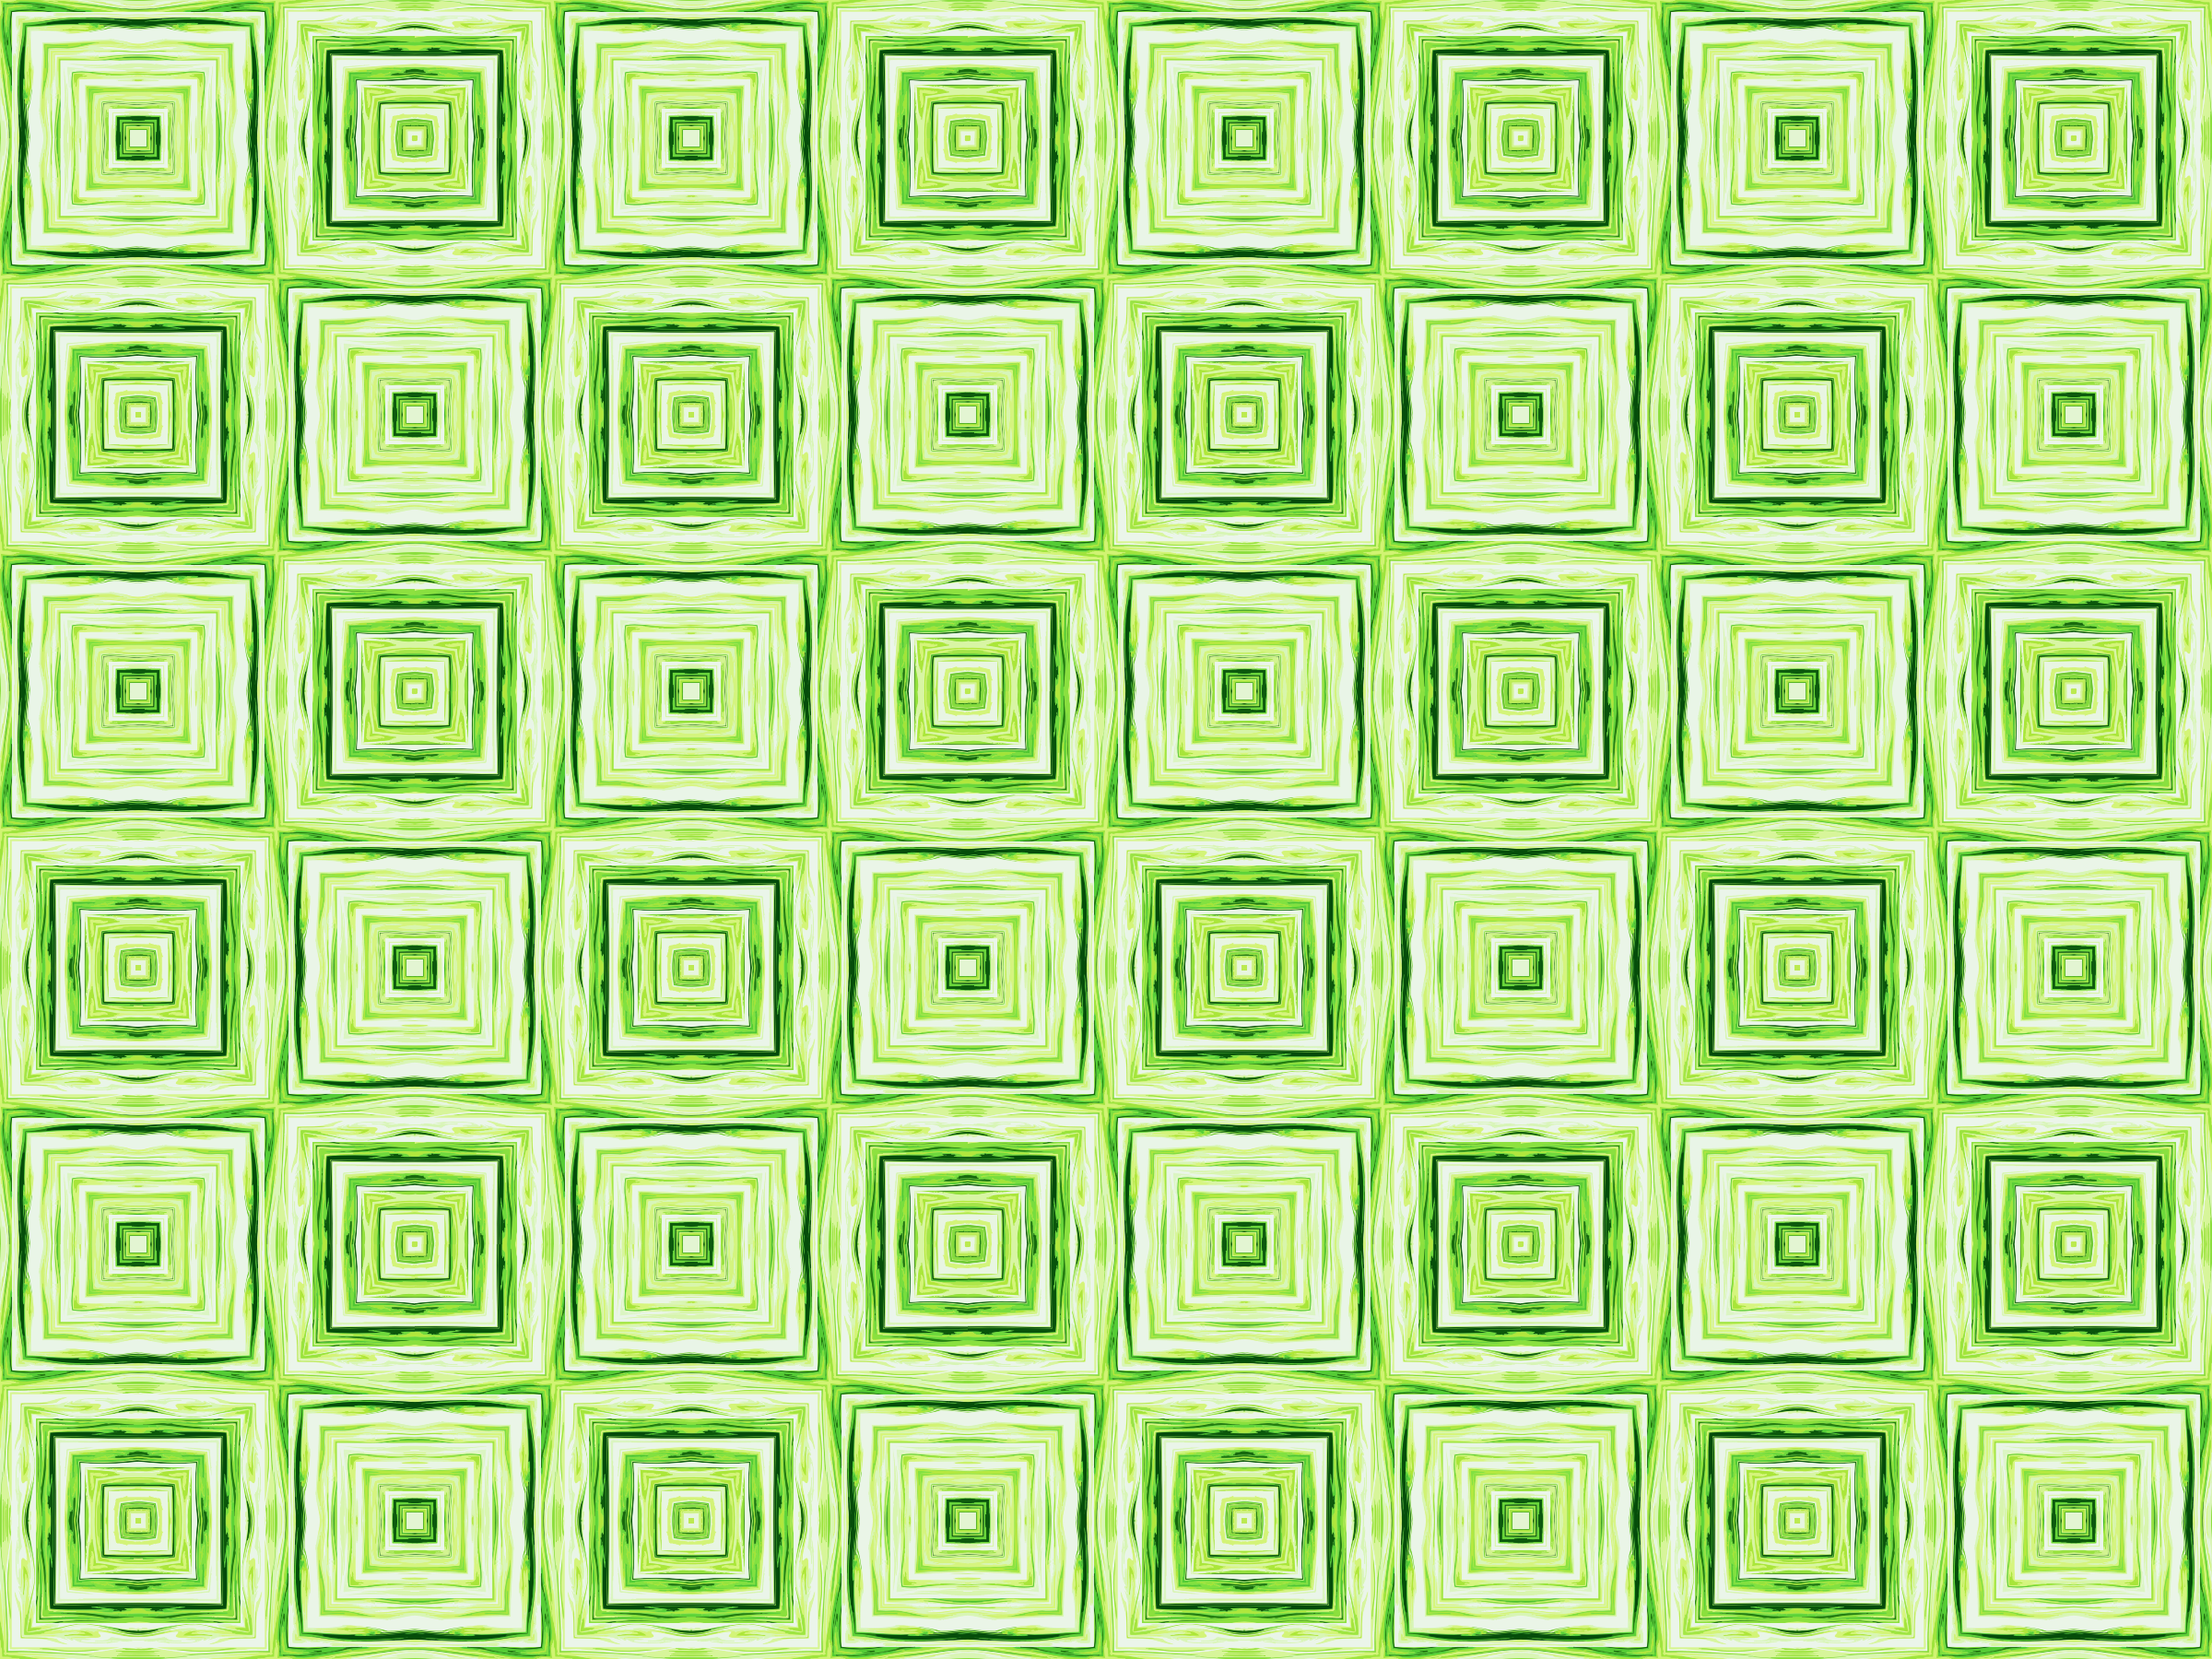 Background pattern 314 (colour 3) by Firkin